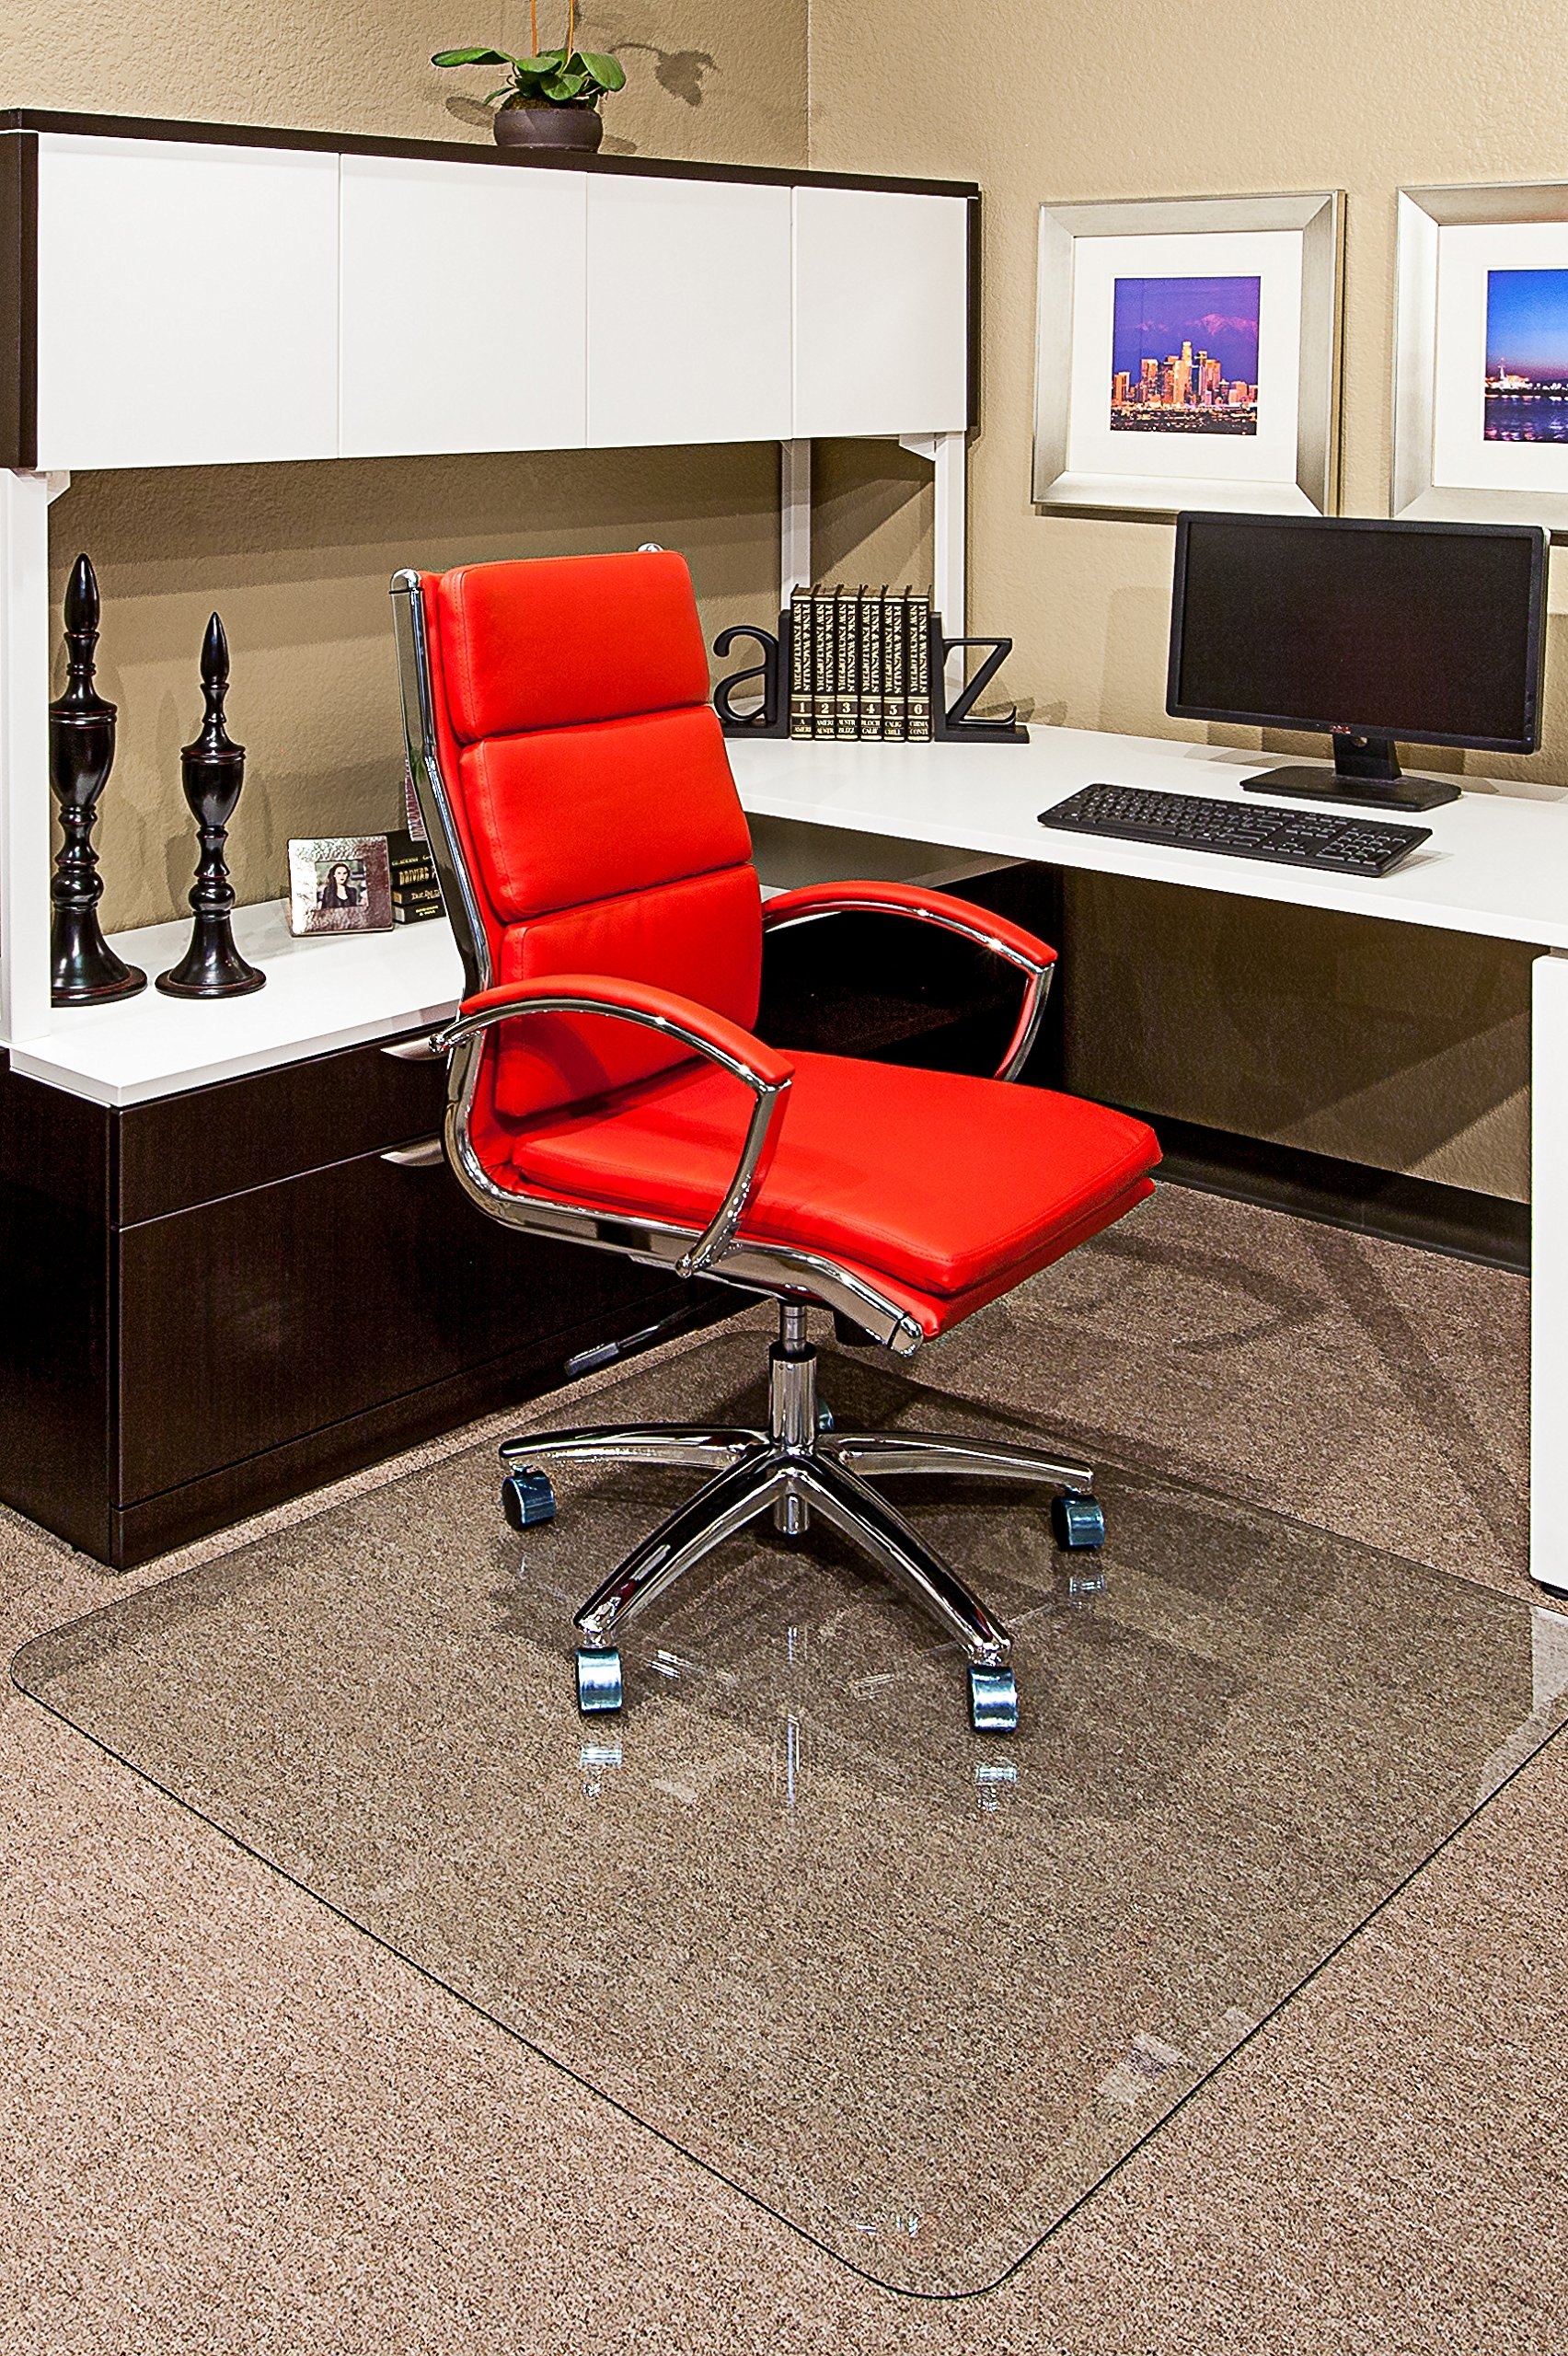 44'' x 50'' Clearly Innovative Lifetime Glass Chairmat with Patented Beveled Edges